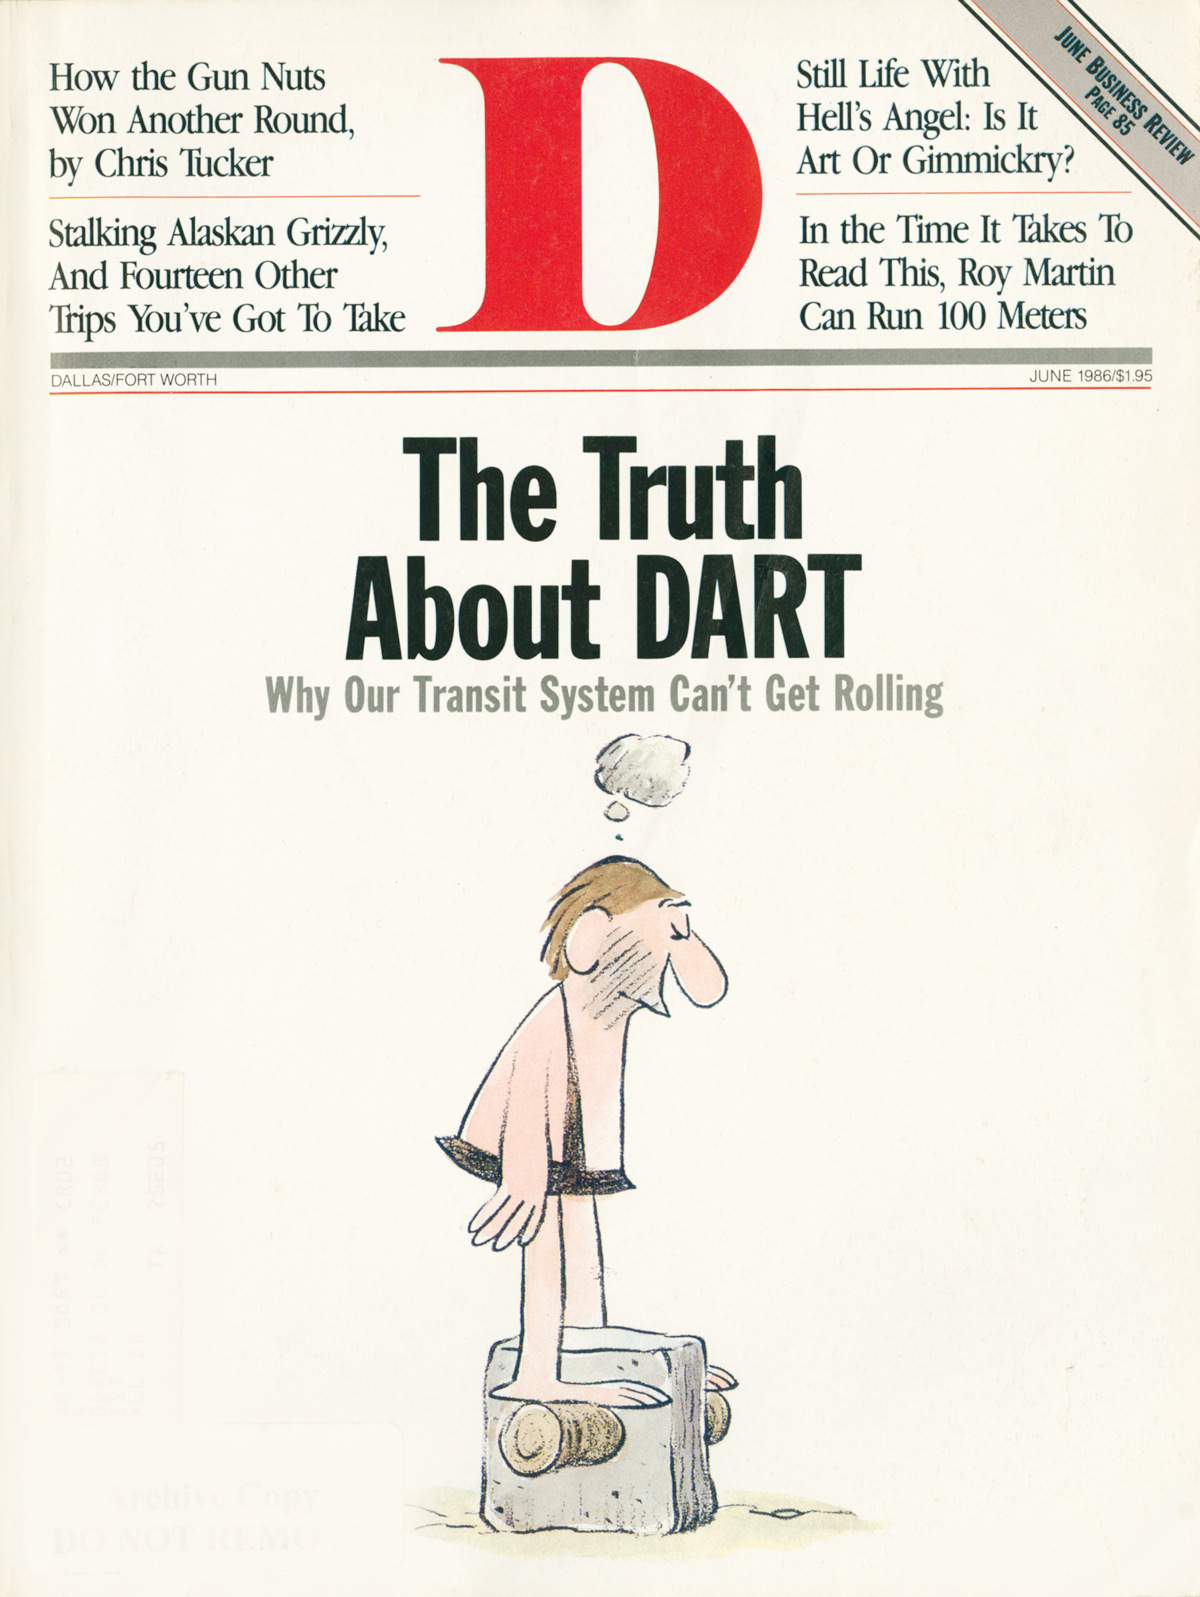 June 1986 cover